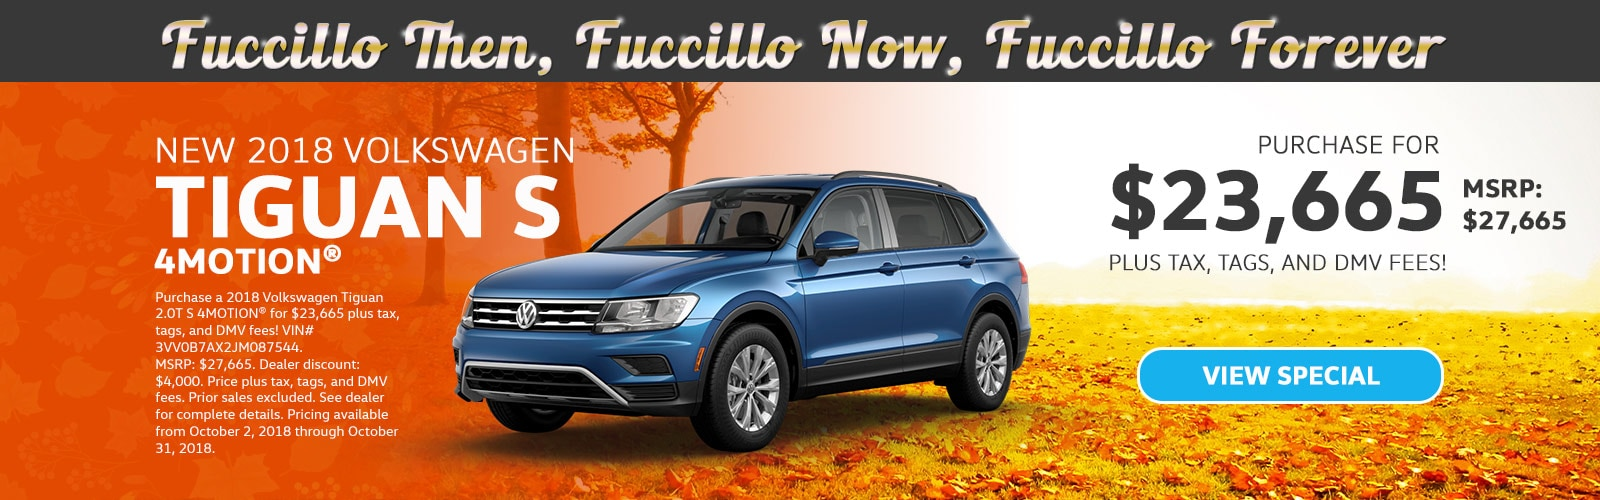 Welcome To Fuccillo Volkswagen Of Schenectady, NY